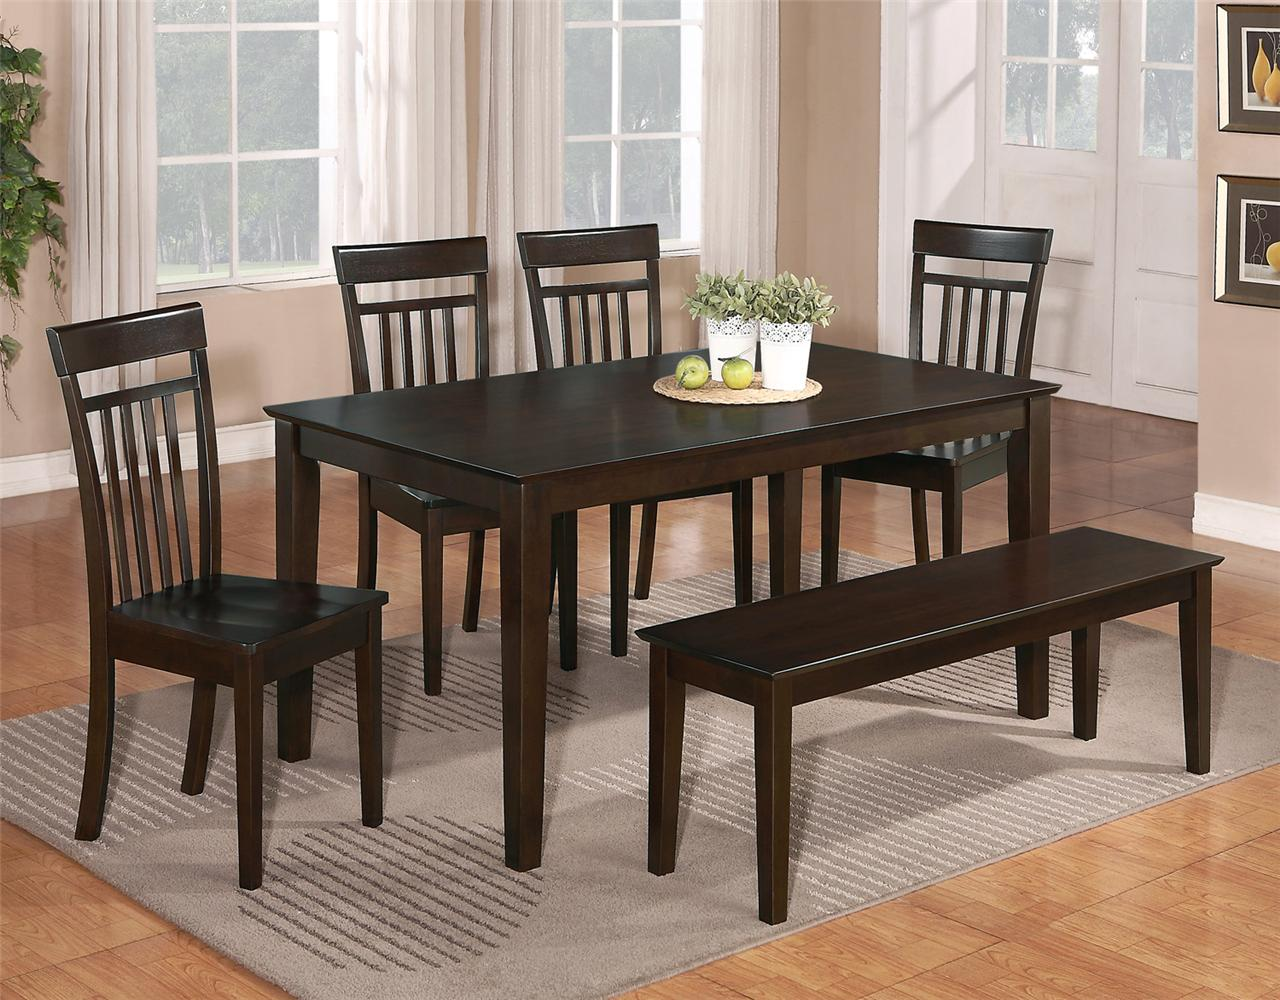 6 pc dinette kitchen dining room set table w 4 wood chair for Dining room table and 4 chairs